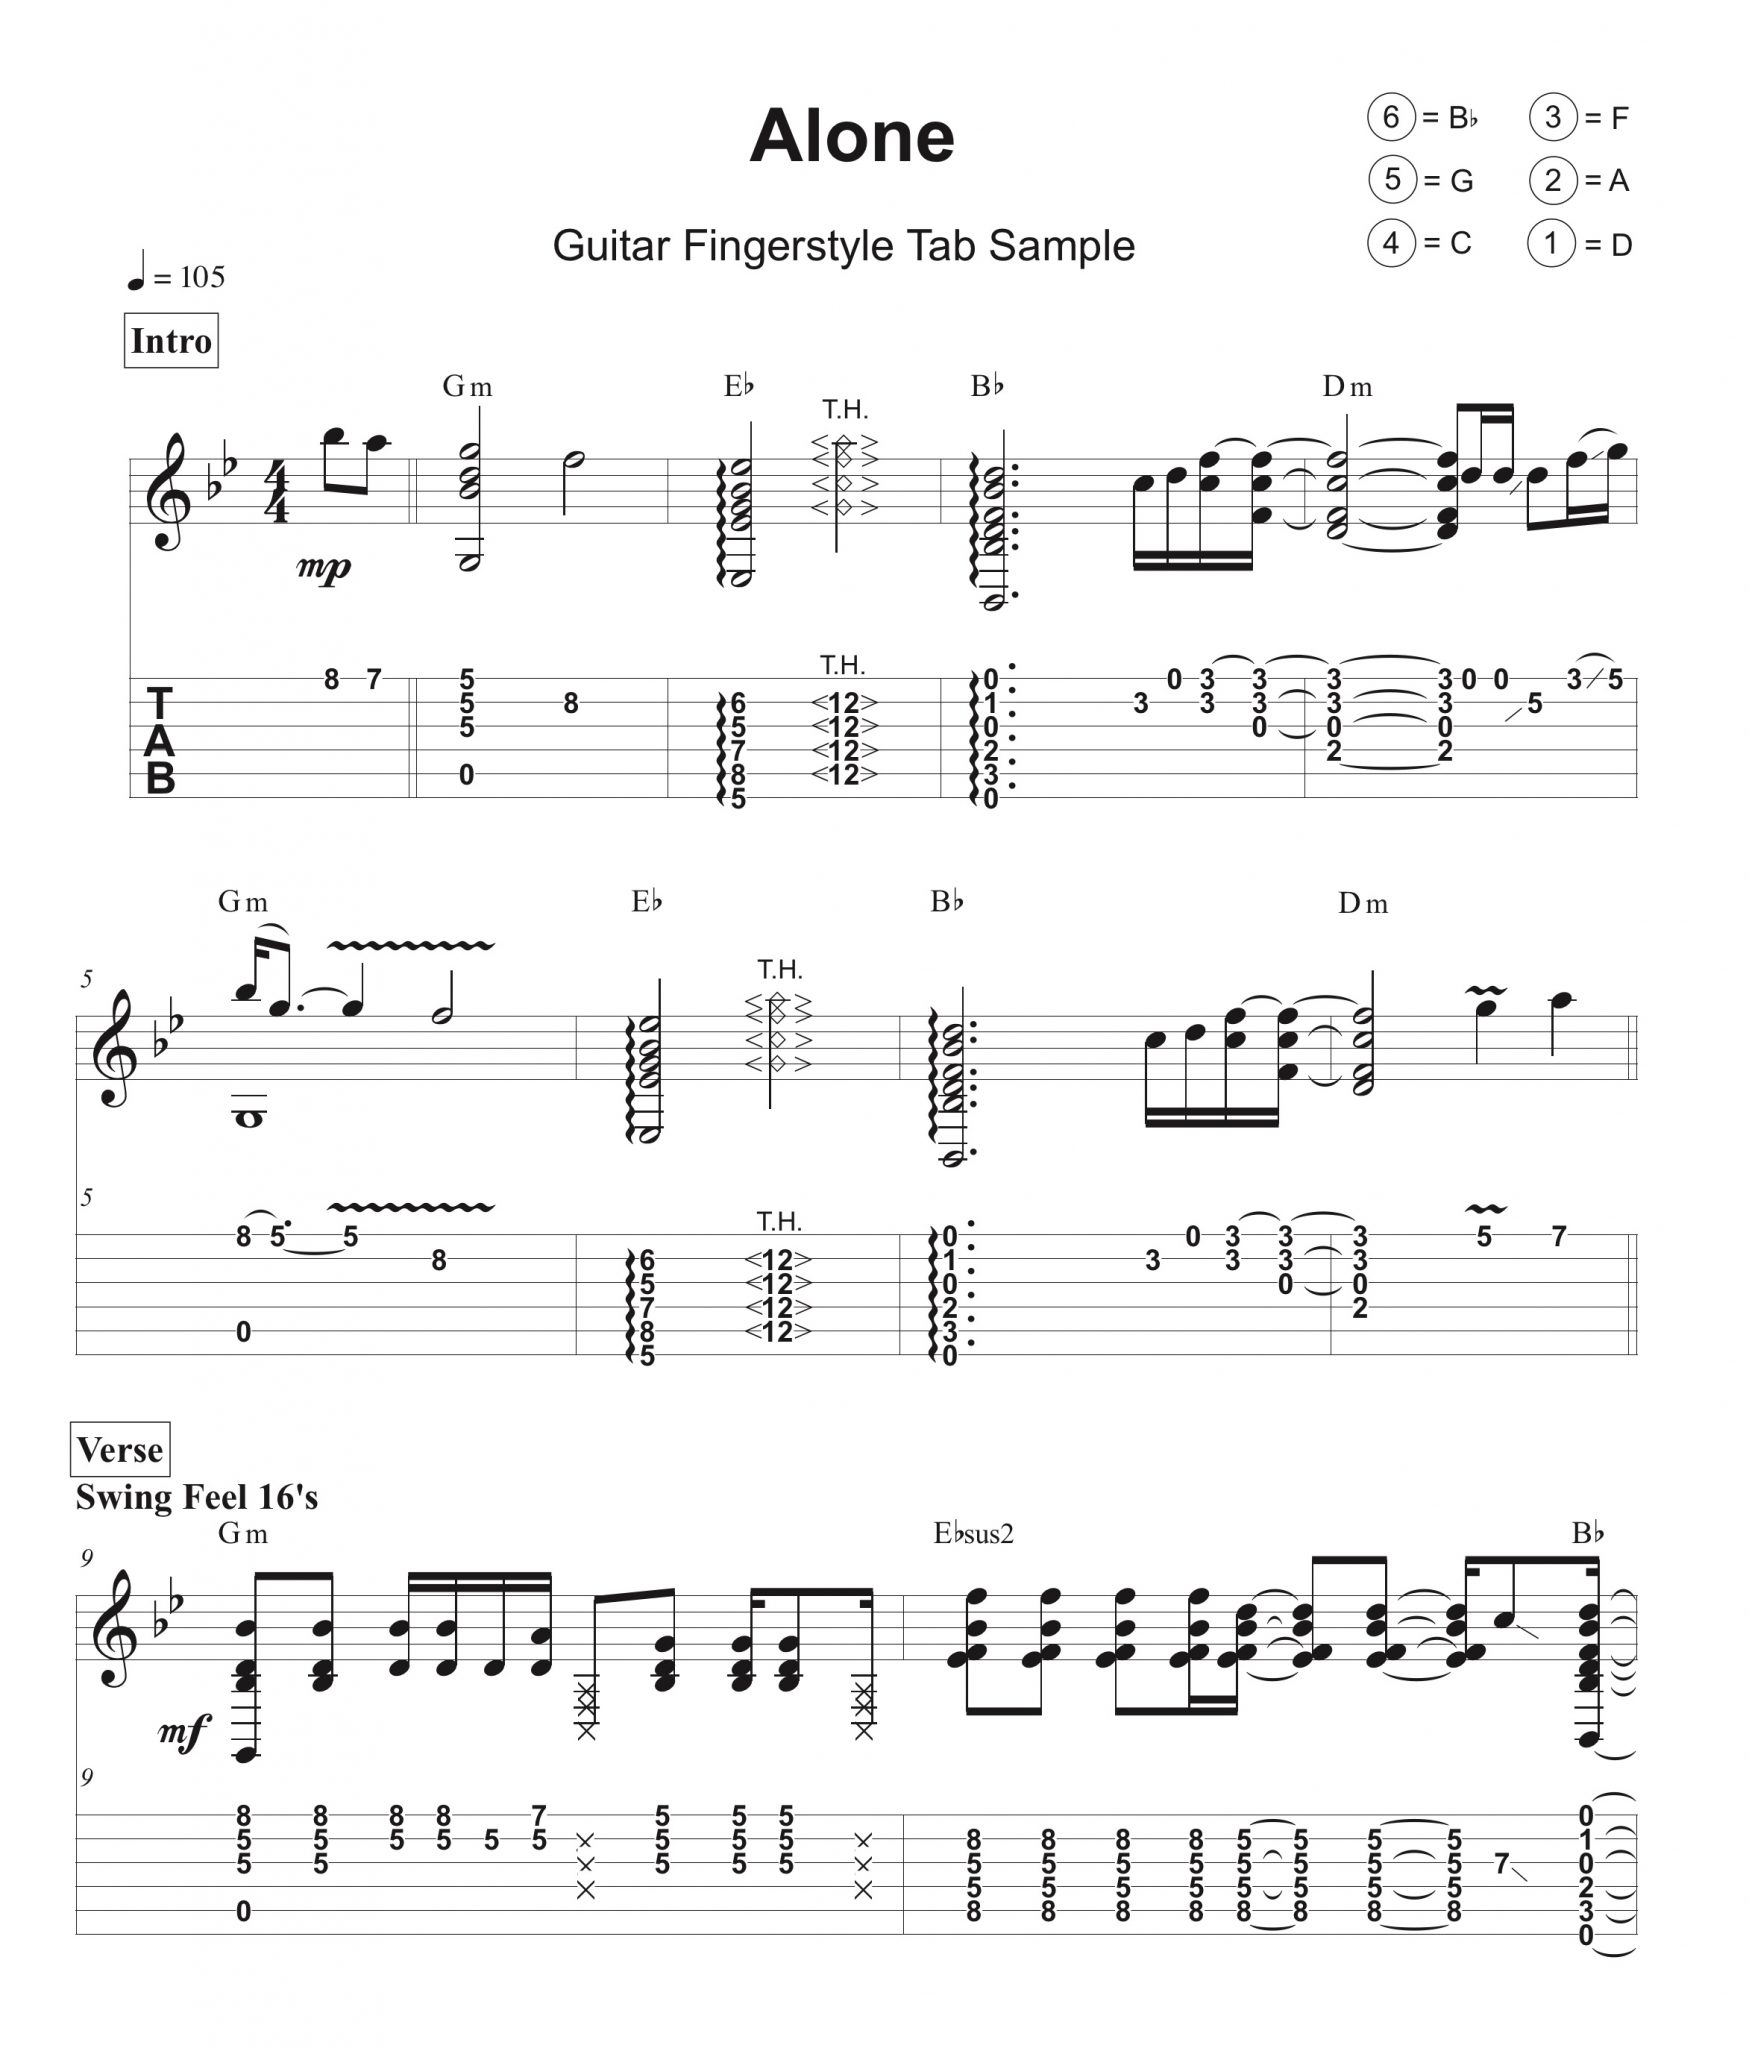 Guitar tab sample